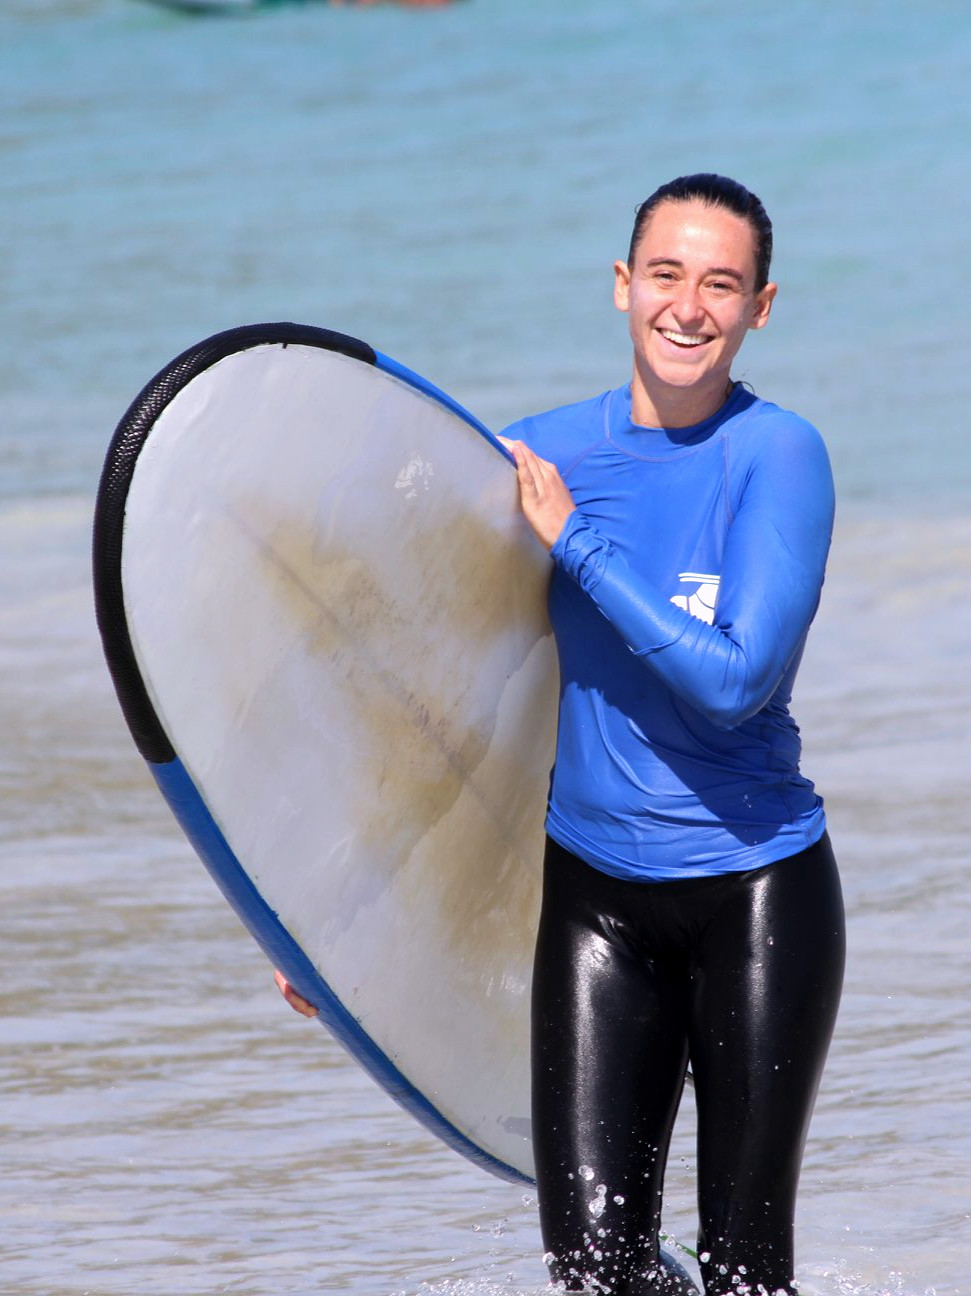 A smiling guest from Kura Kura Surf Camp holding a soft top